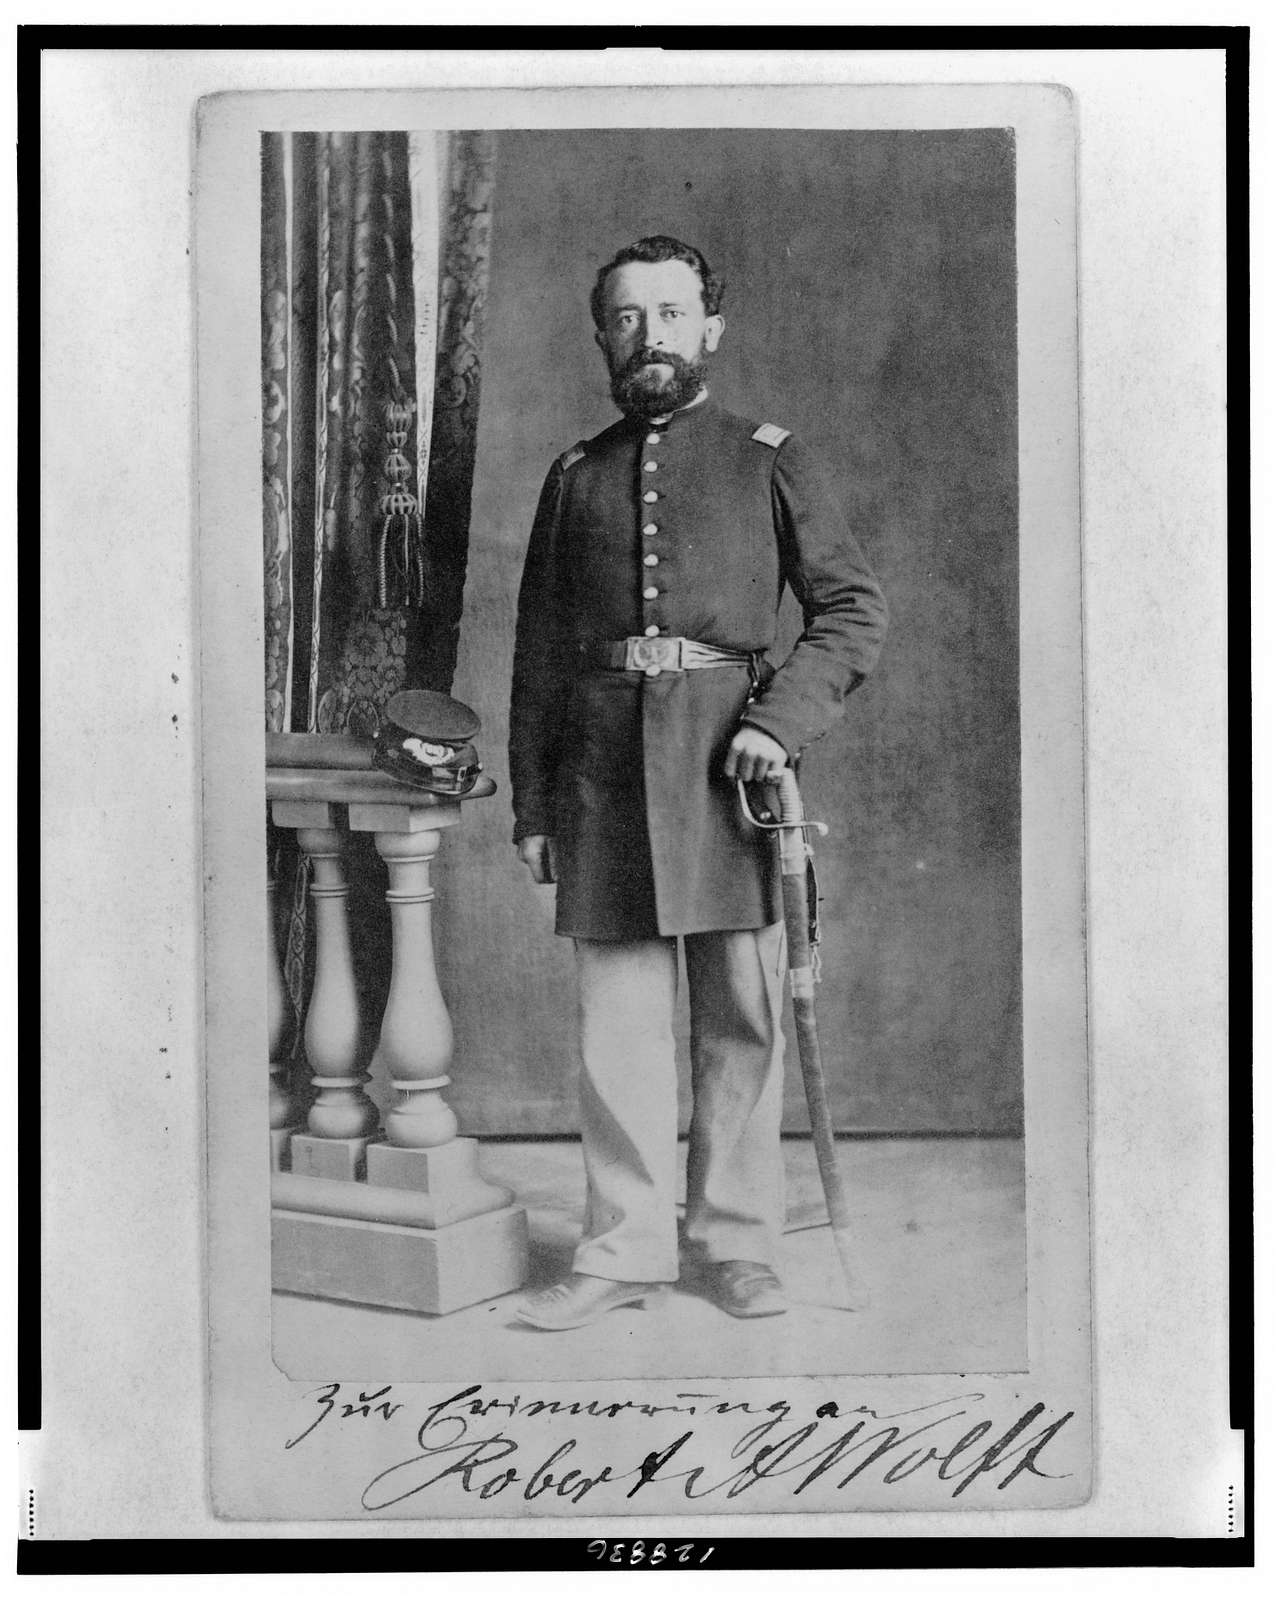 [Lieutenant Robert A. Wolff, Union officer in the 32nd Indiana Regiment, full-length portrait, facing front] / T.M. Schleier's Cartes de Visite Photograph Gallery, Nashville, Tenn.